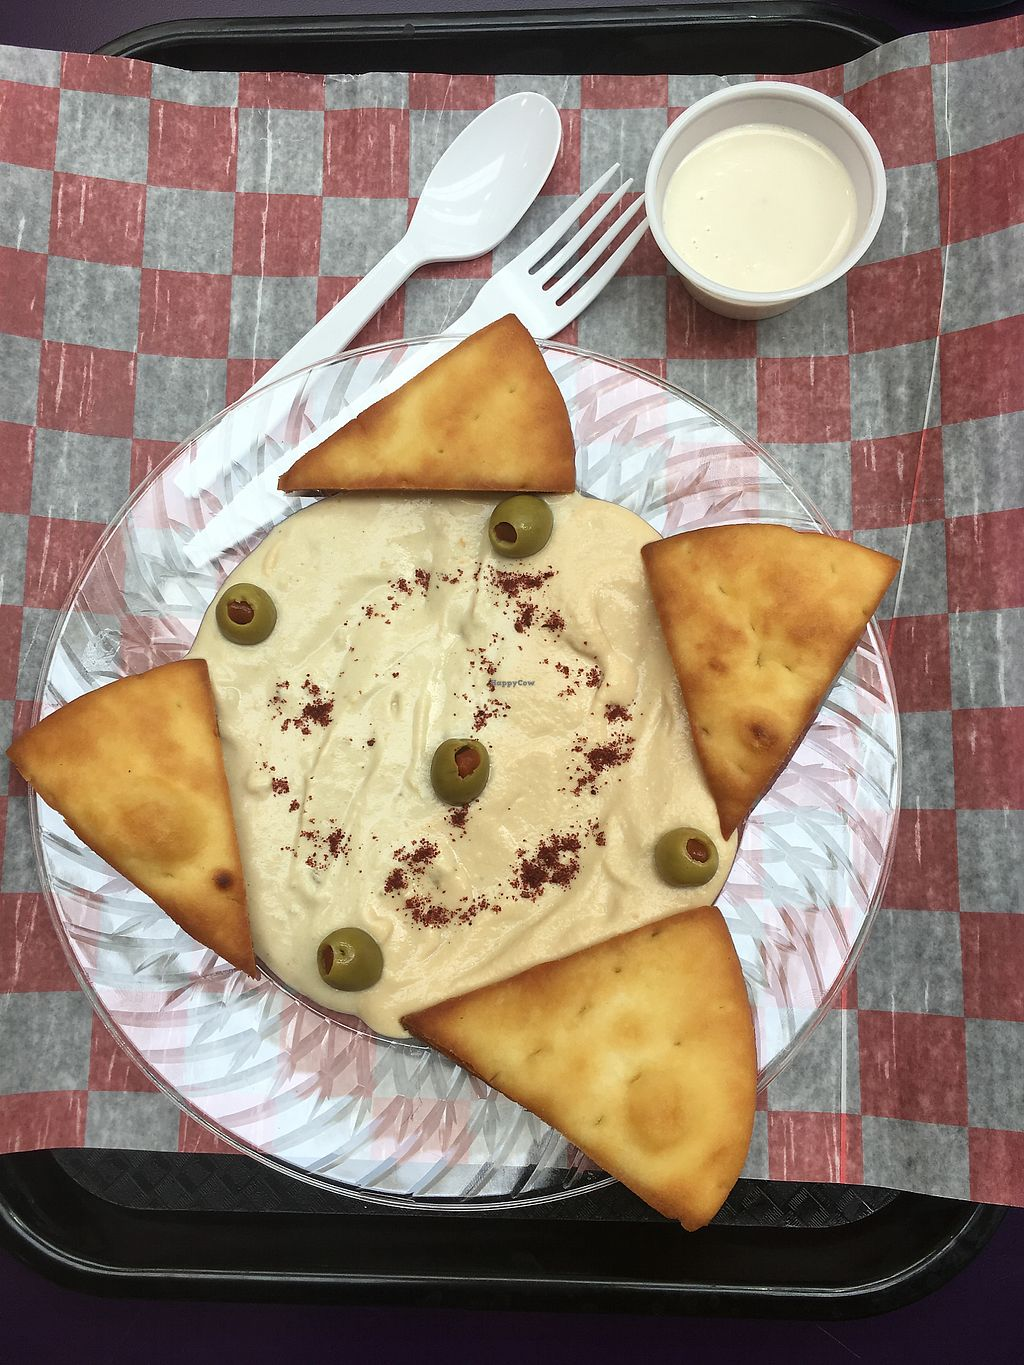 """Photo of Lazize  by <a href=""""/members/profile/ccampbel"""">ccampbel</a> <br/>Baba-ghanoug <br/> January 7, 2018  - <a href='/contact/abuse/image/108521/344047'>Report</a>"""